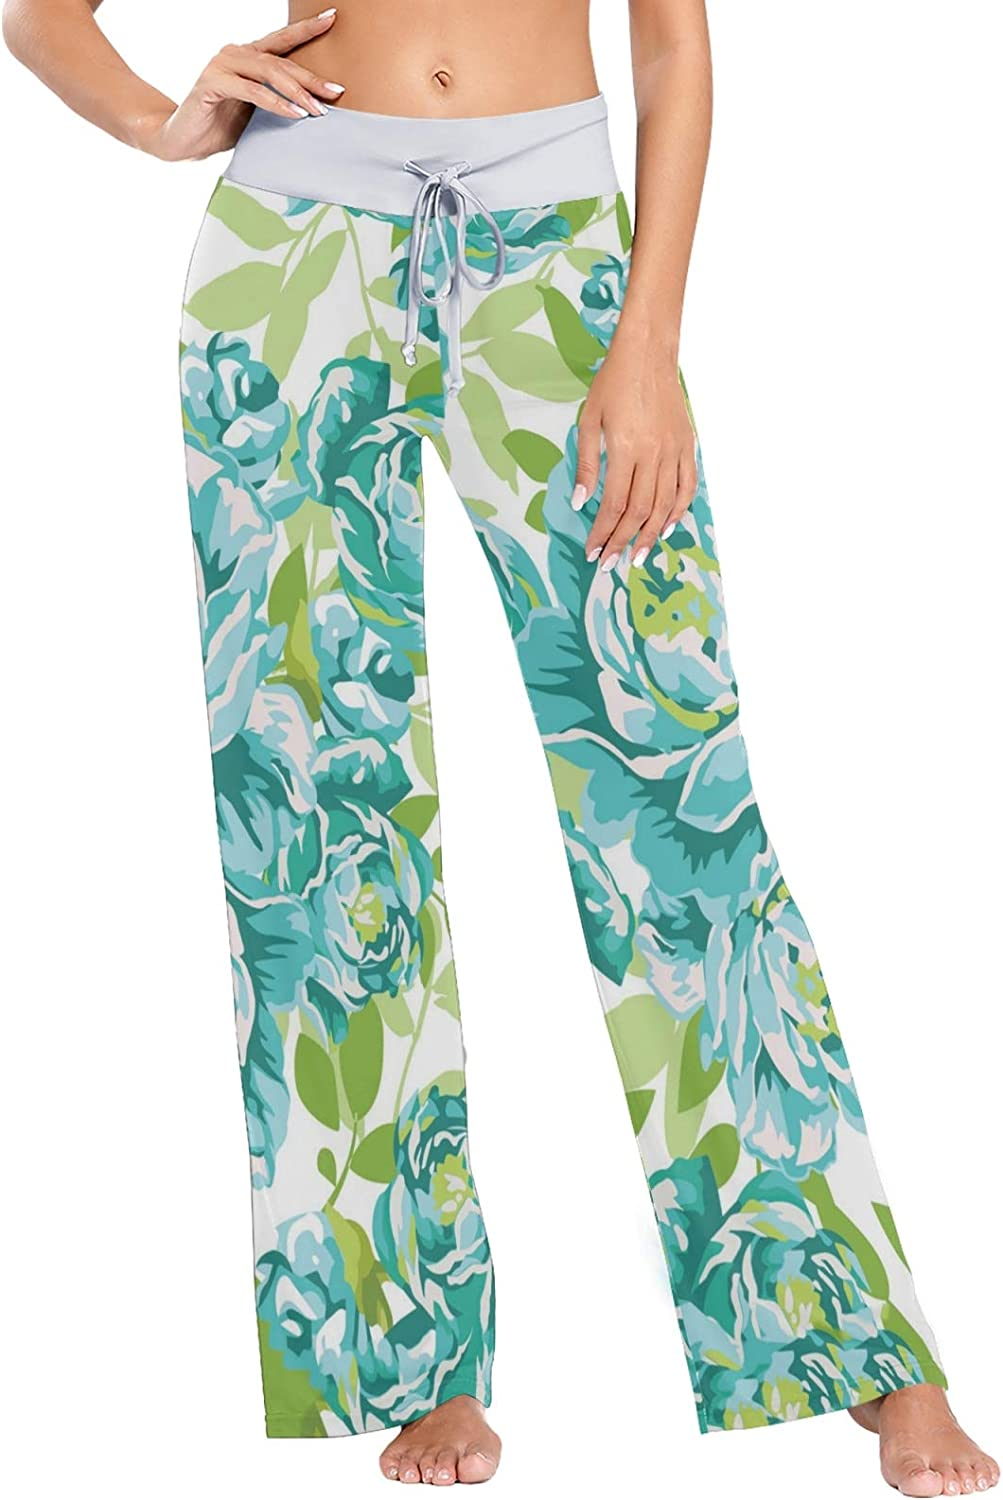 MSACRH Pajama Pants for Women Flowers Green Spring new work Import one after another Pant Blue Sleepwear